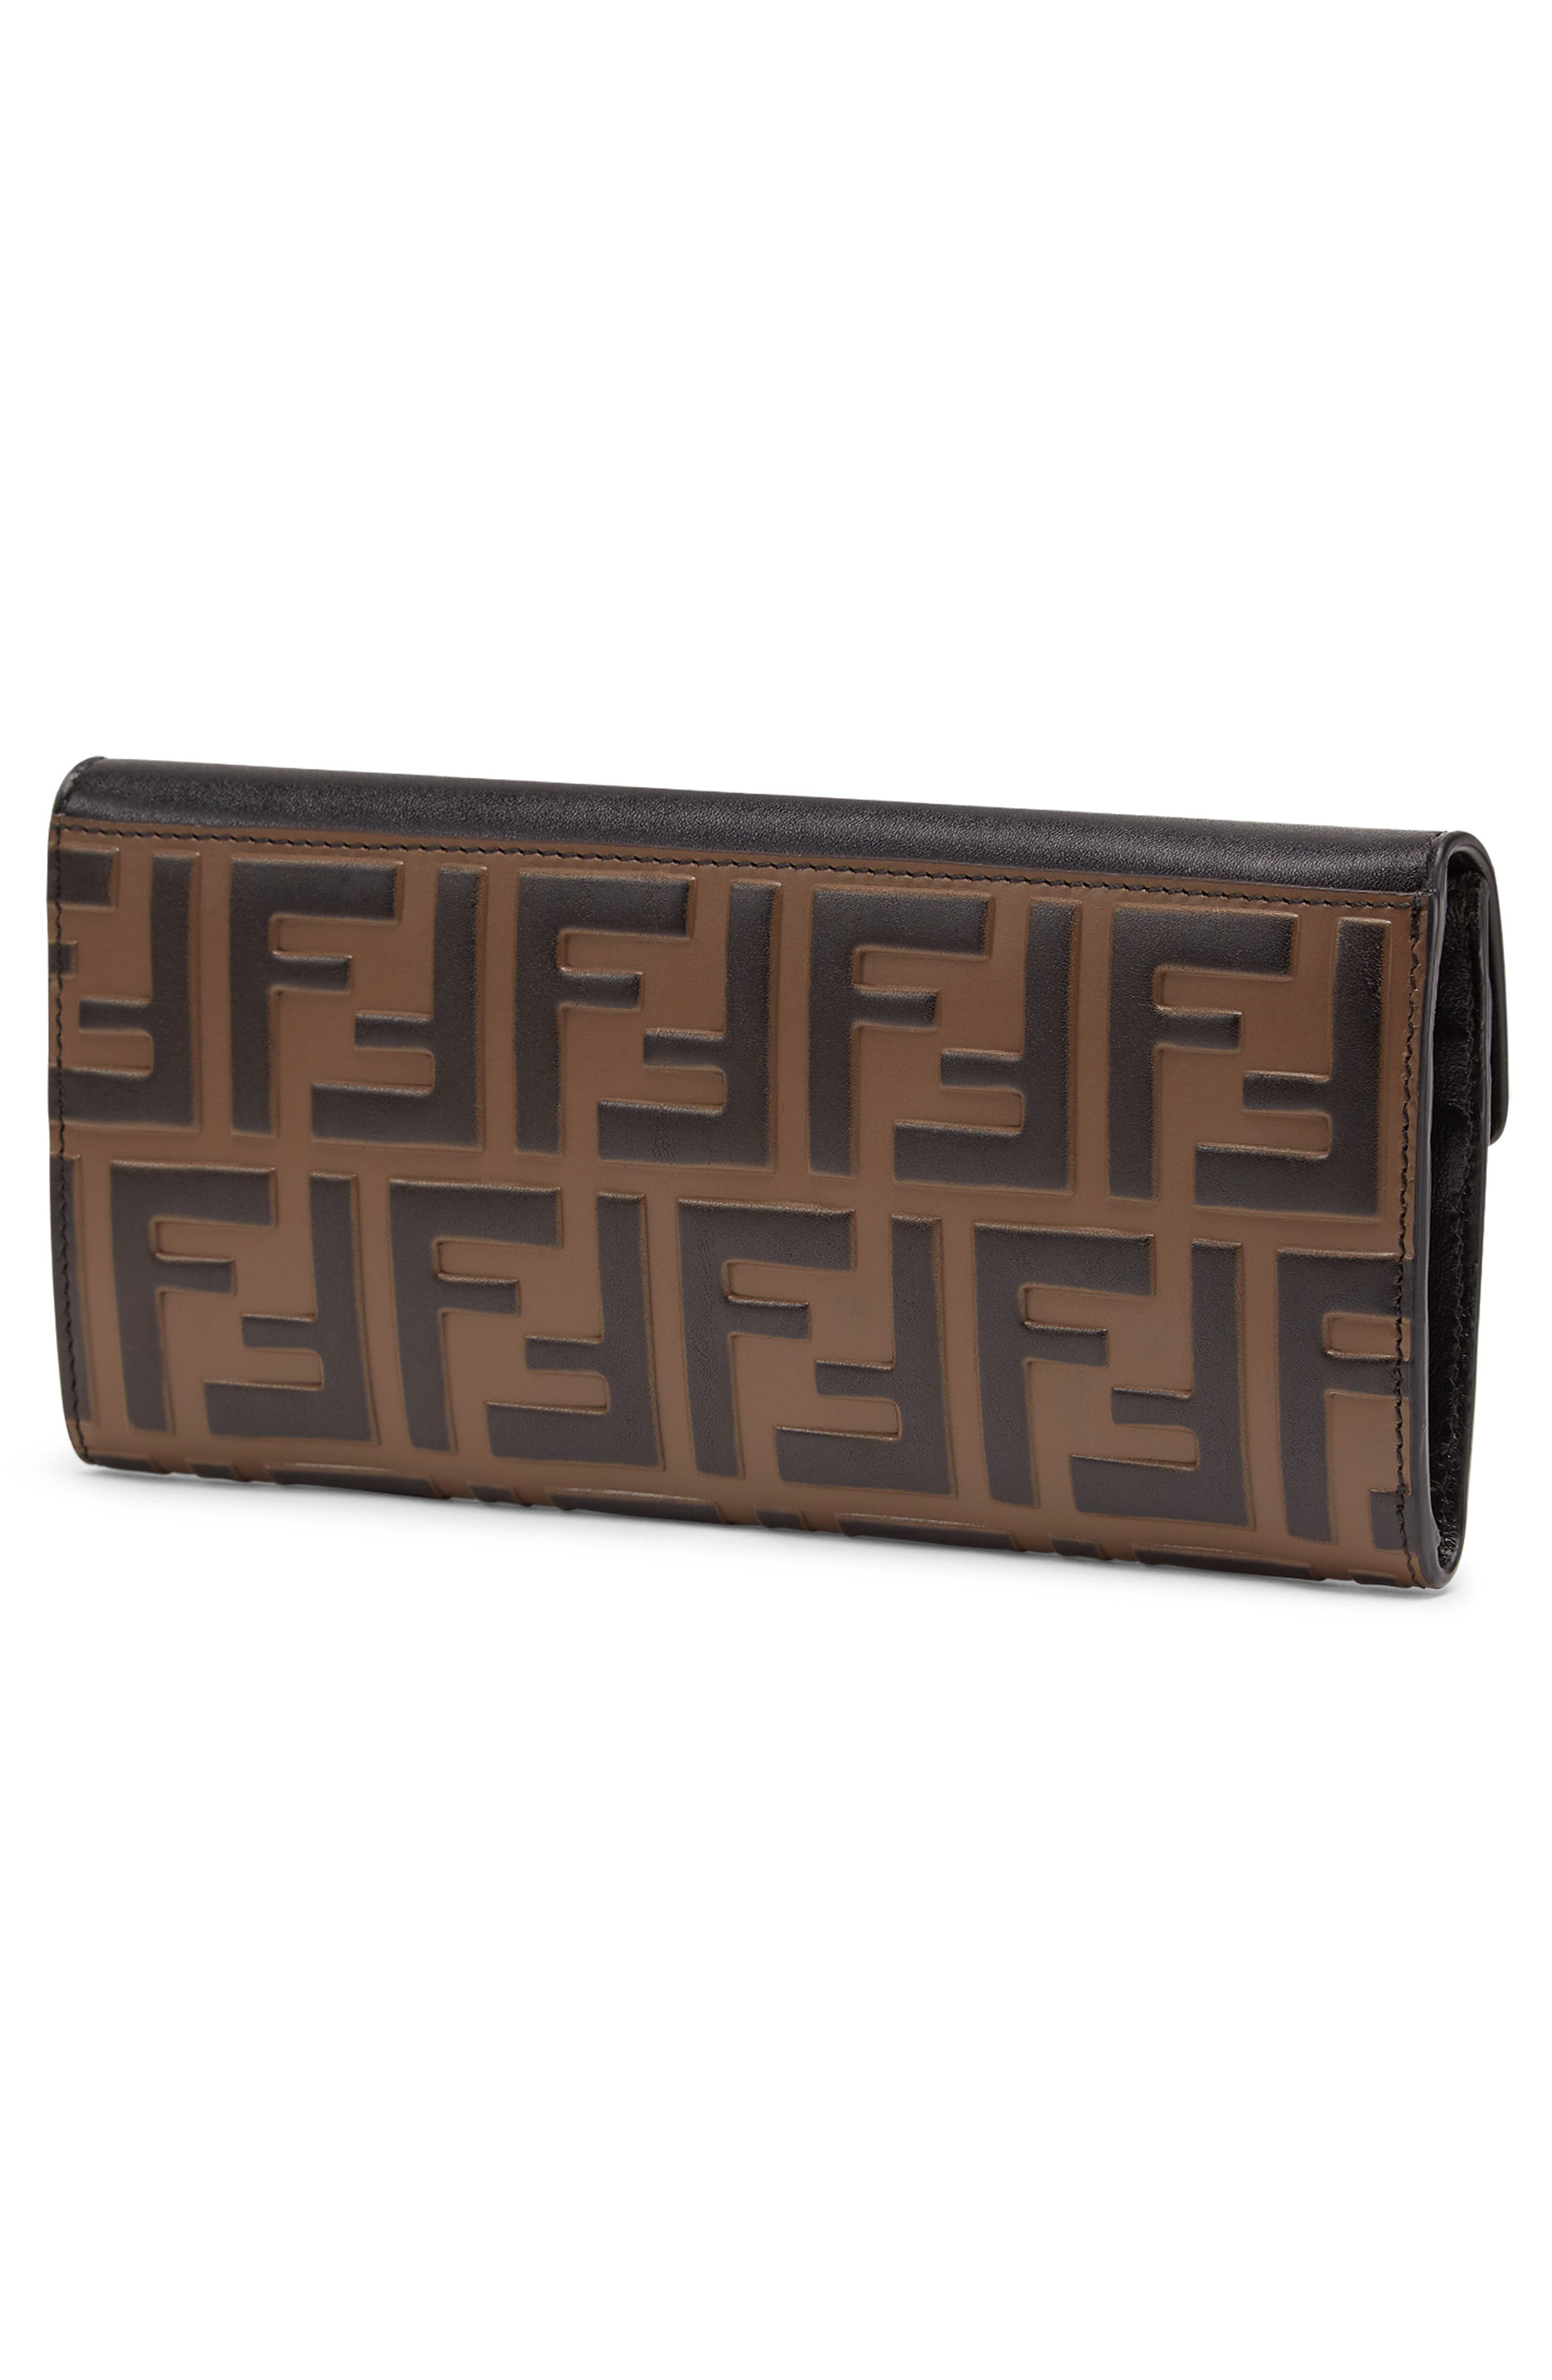 FENDI,                             Logo Calfskin Leather Continental Wallet,                             Alternate thumbnail 3, color,                             NERO/ MAYA